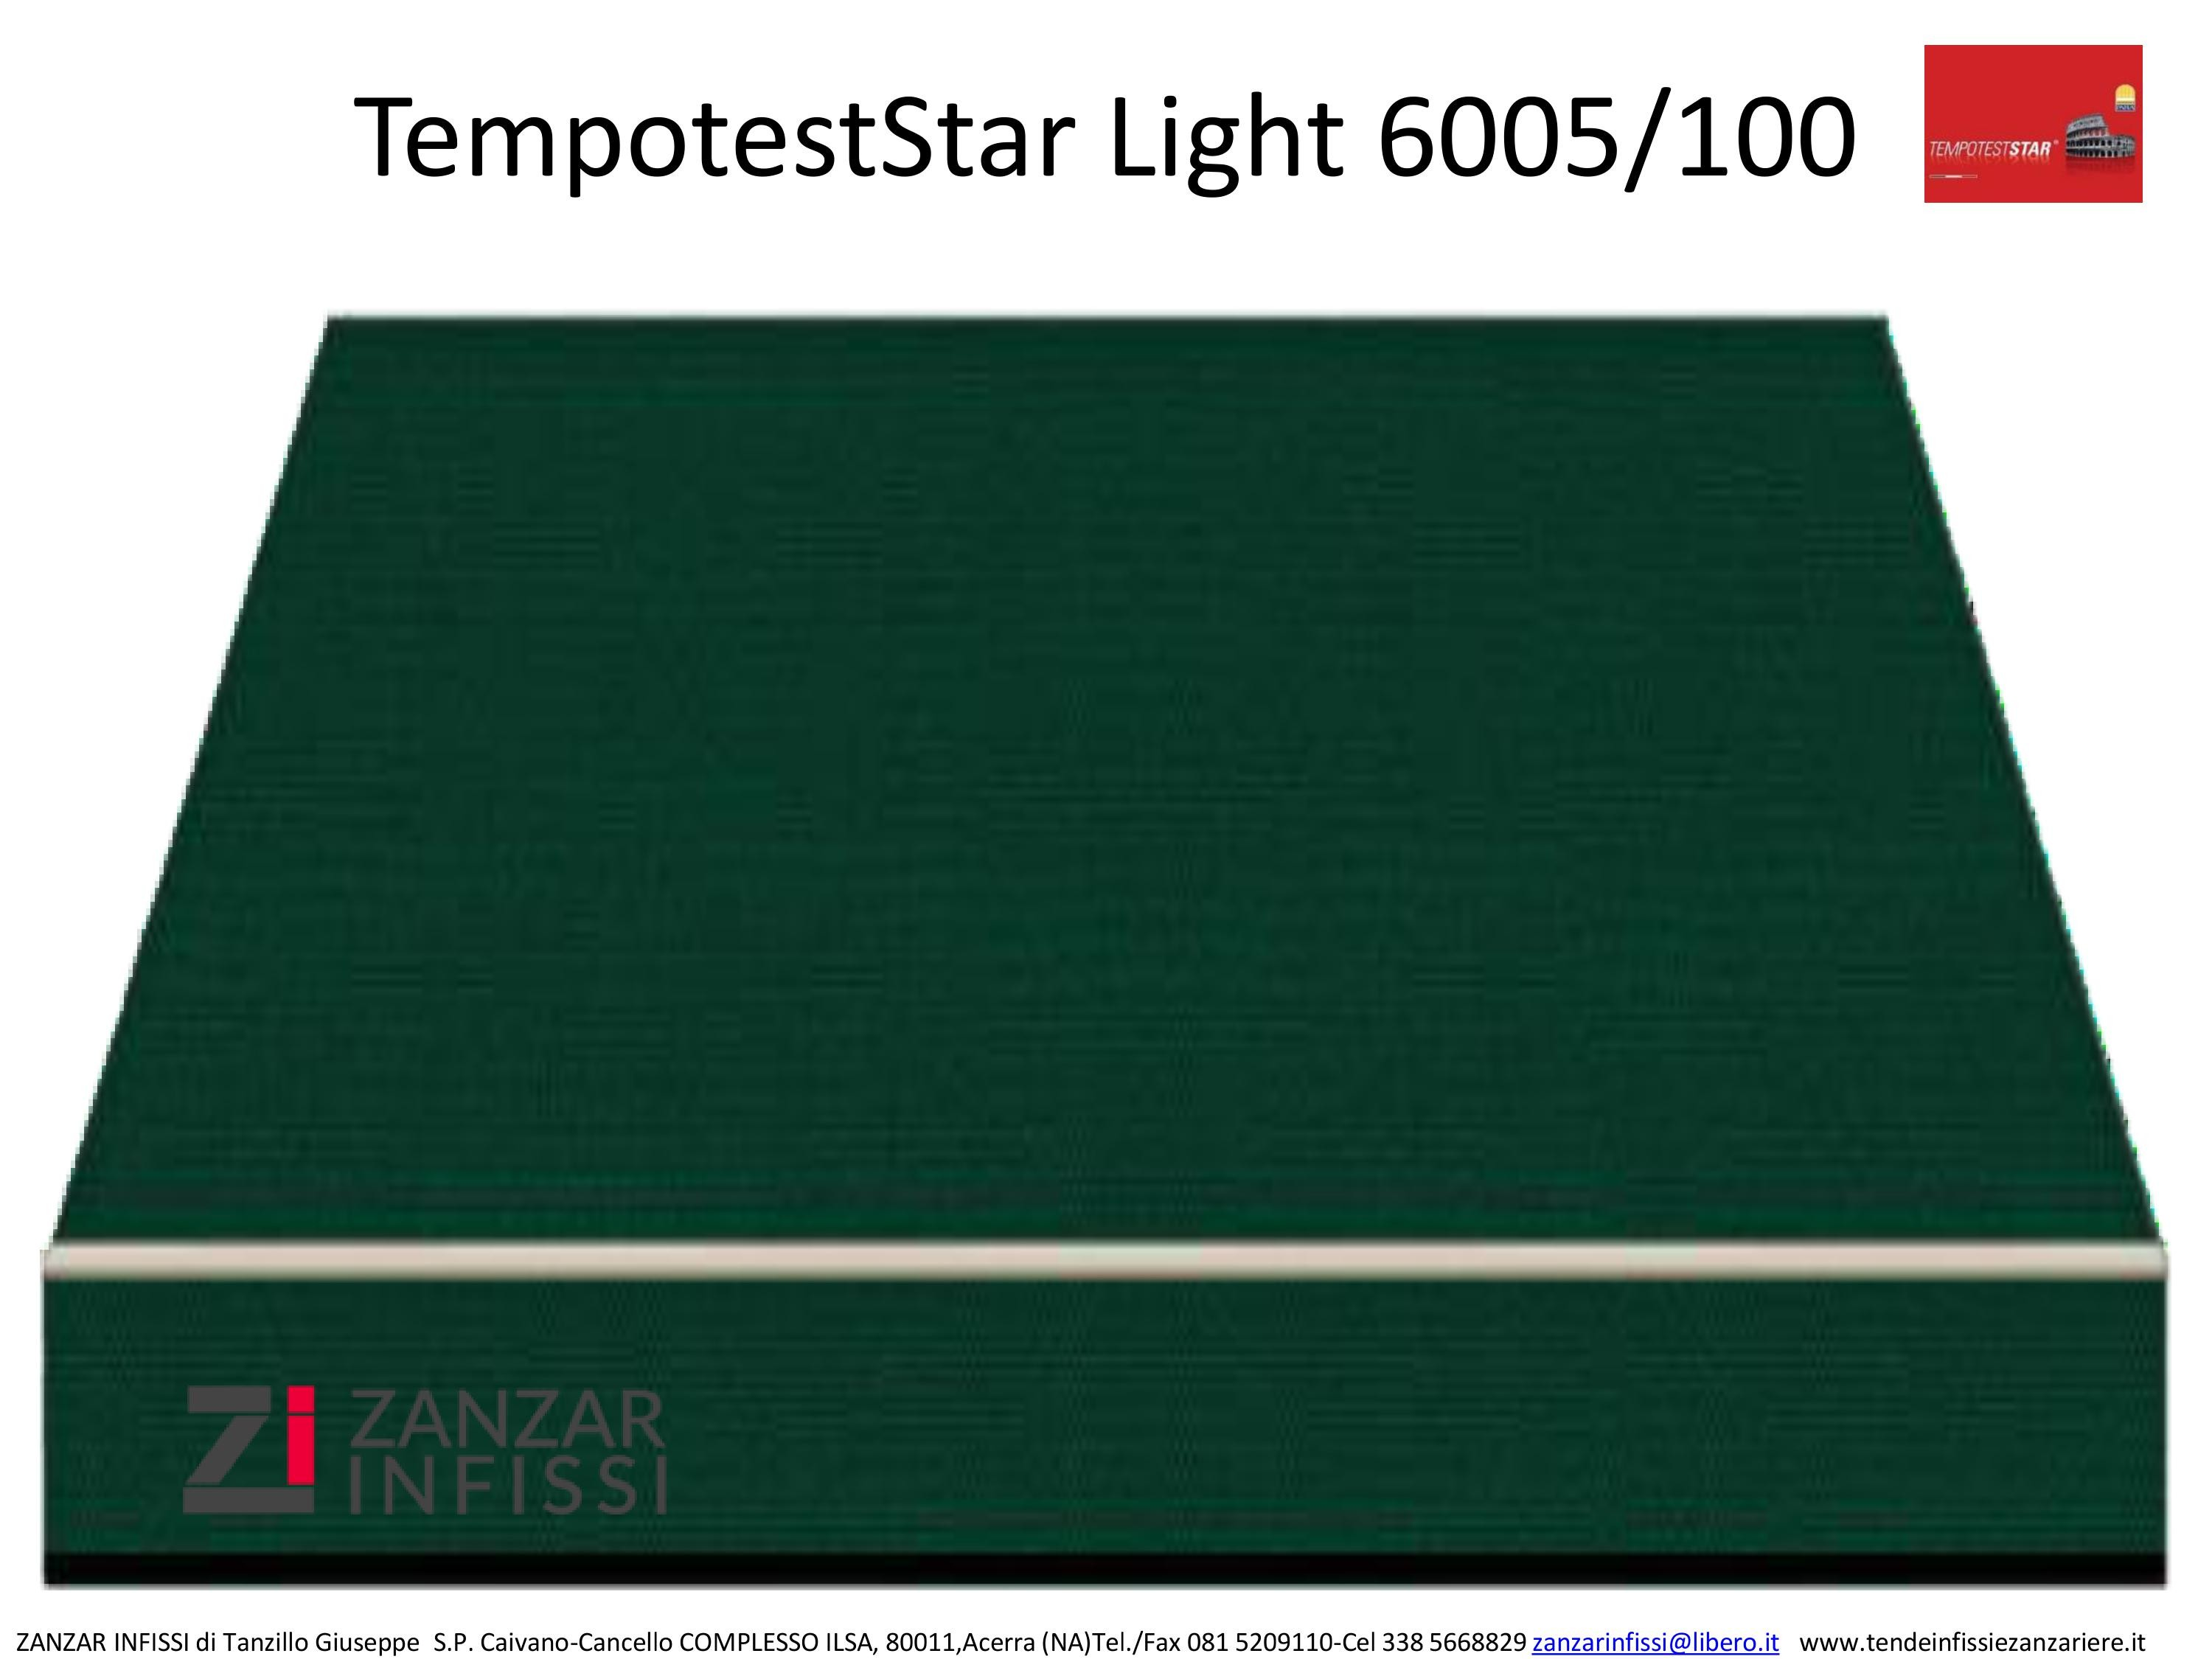 Tempotest star light 6005/100